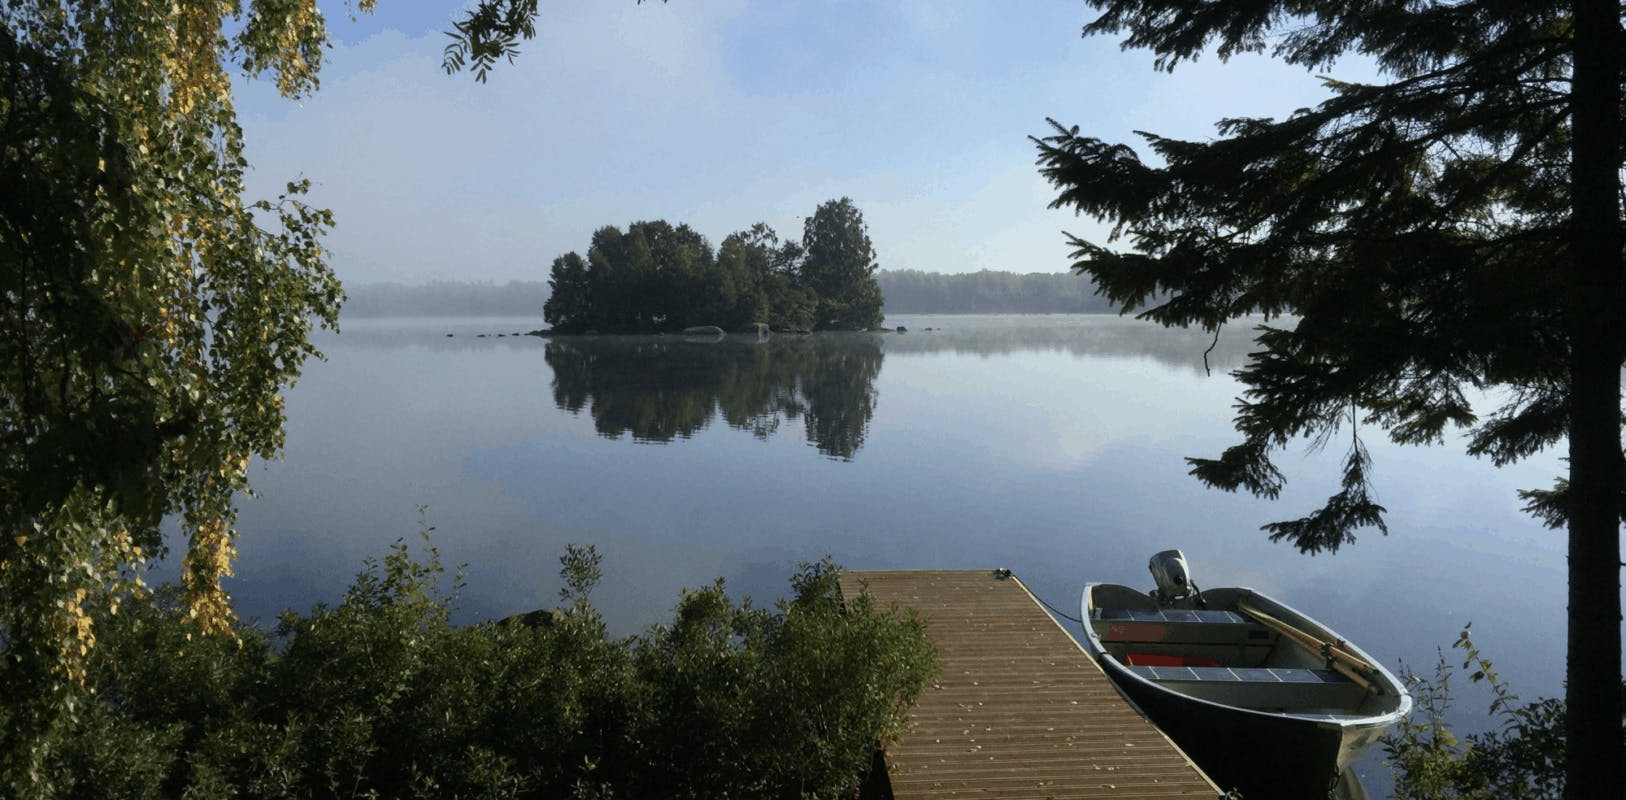 view over a lake with a boat